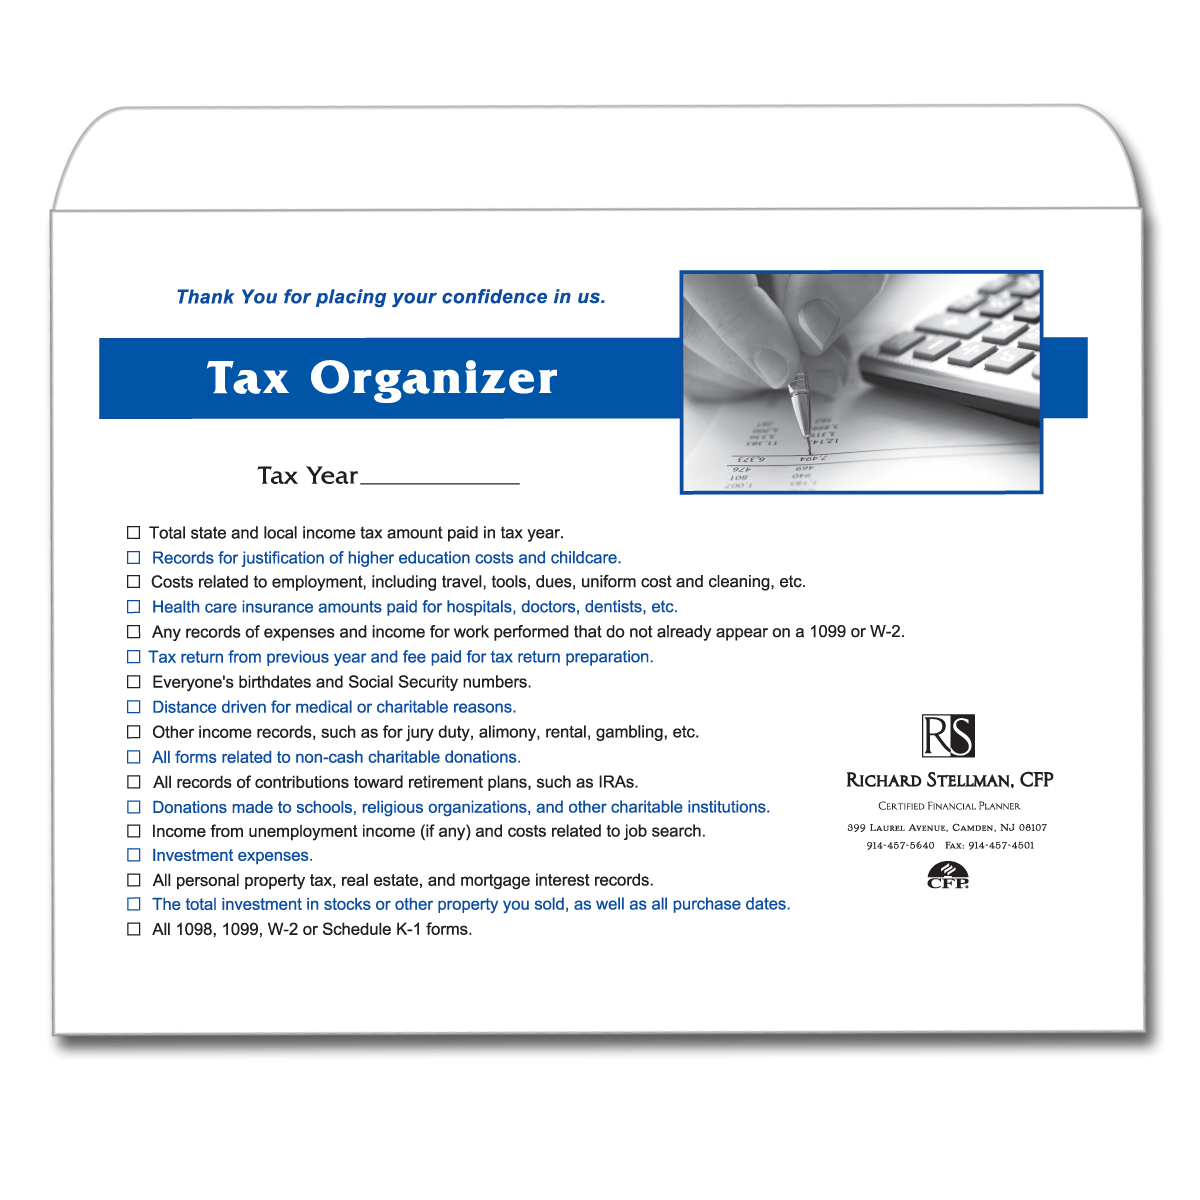 Income tax client tax return envelope mines press picture of tax organizer envelope sciox Image collections